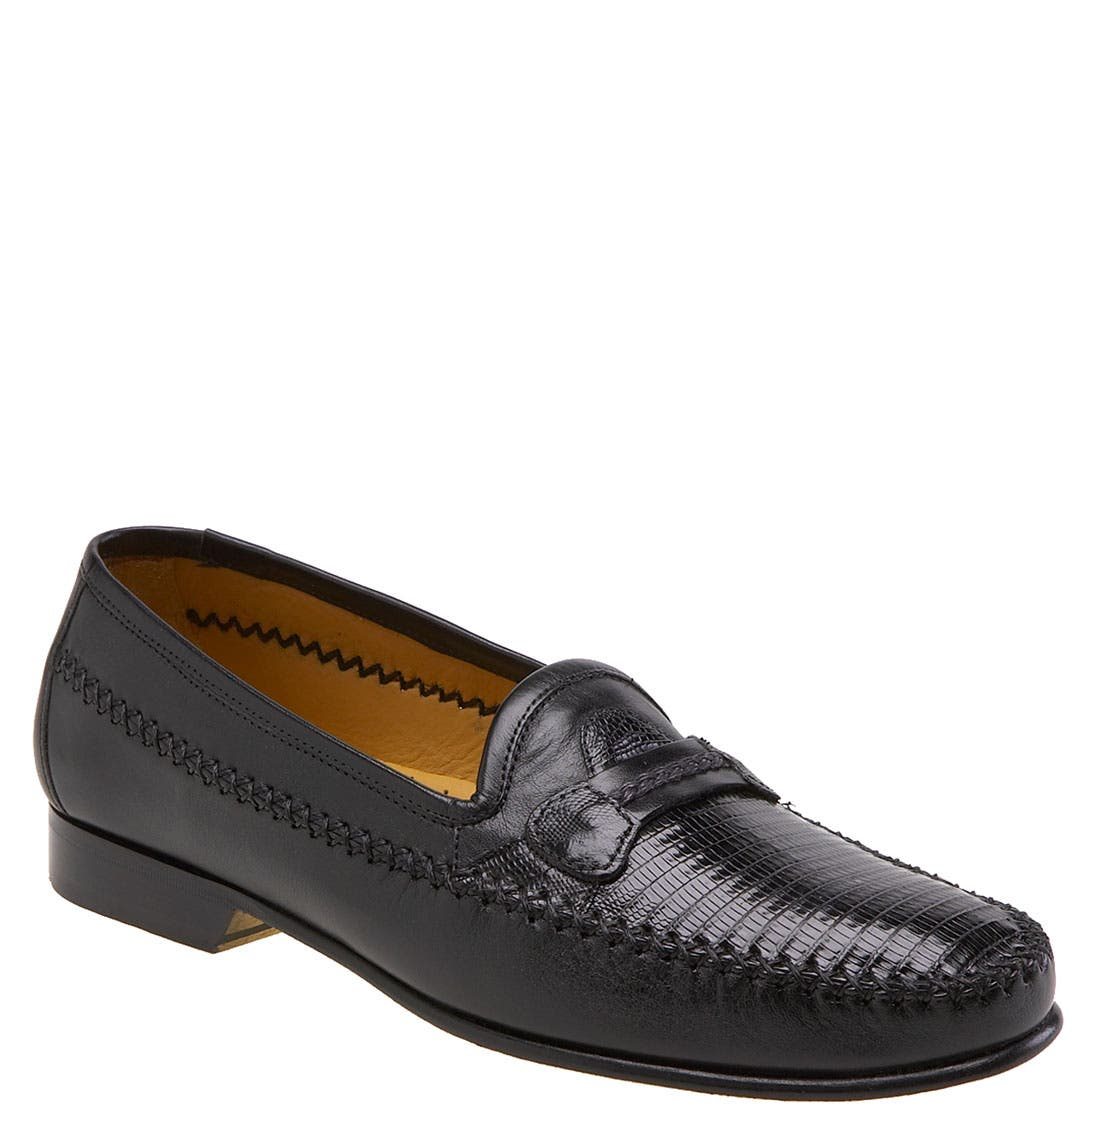 Main Image - Mezlan 'Regan' Loafer